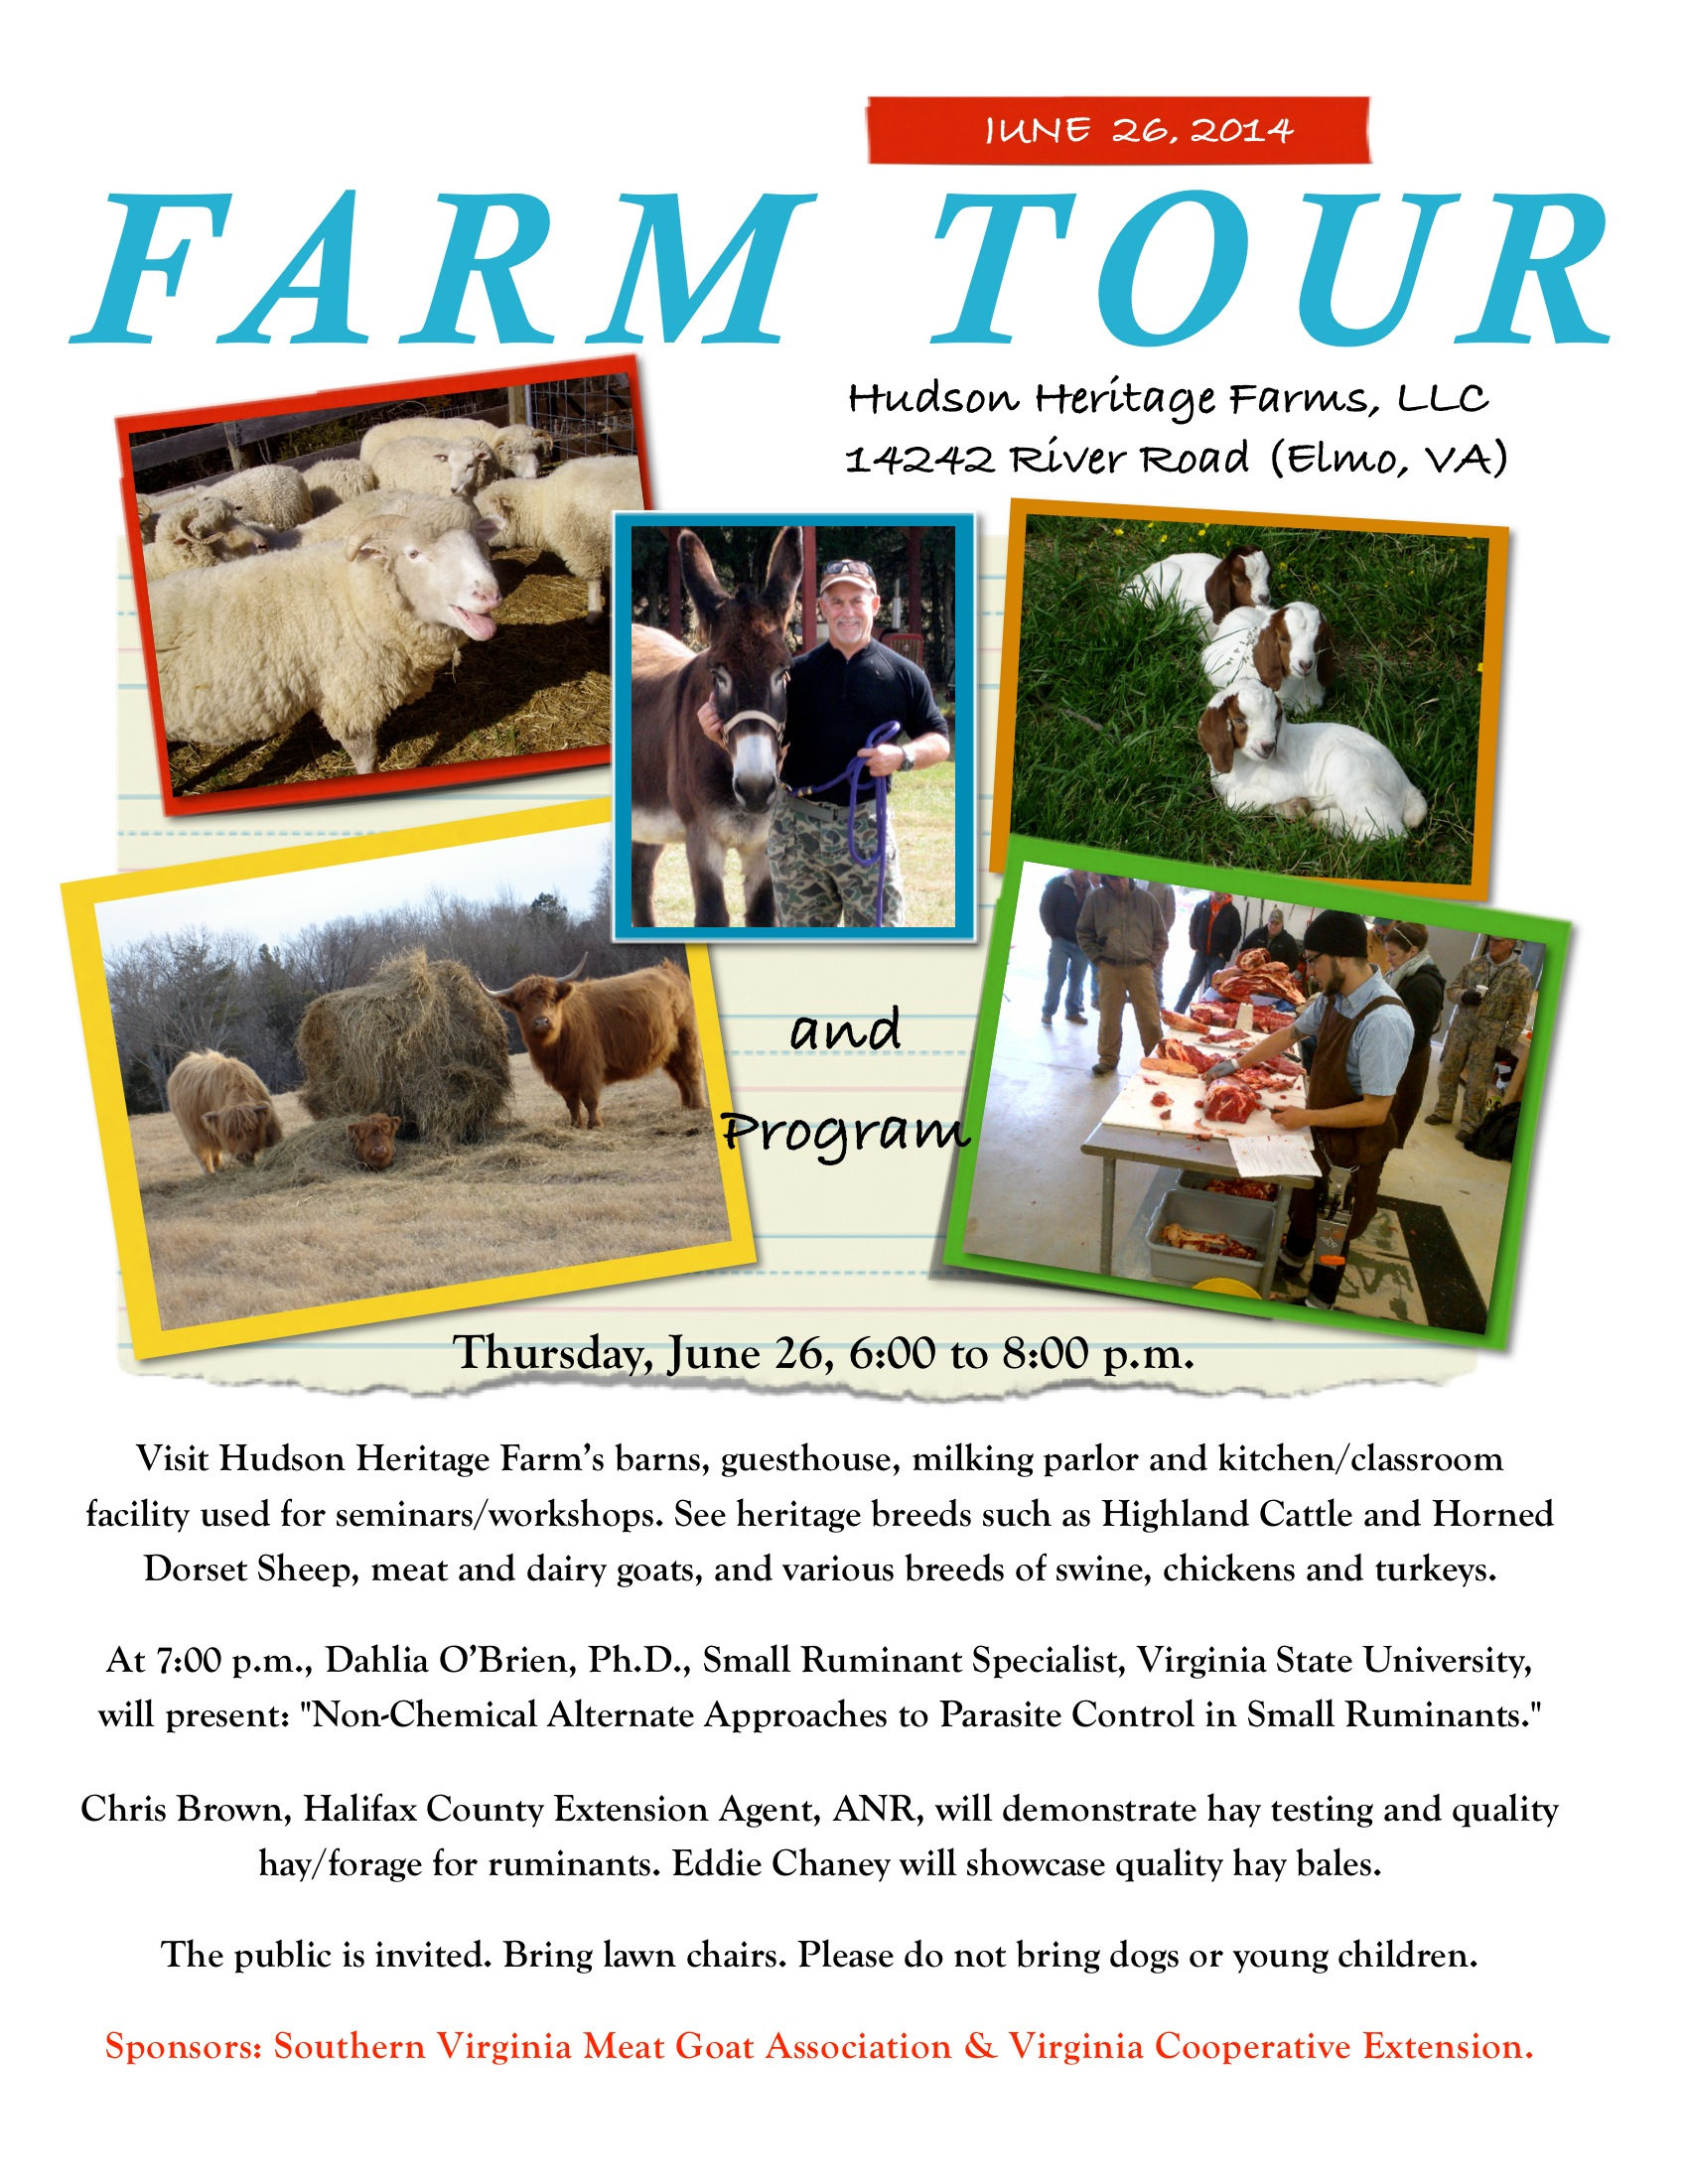 Small Ruminant and Farm Tour Flyer